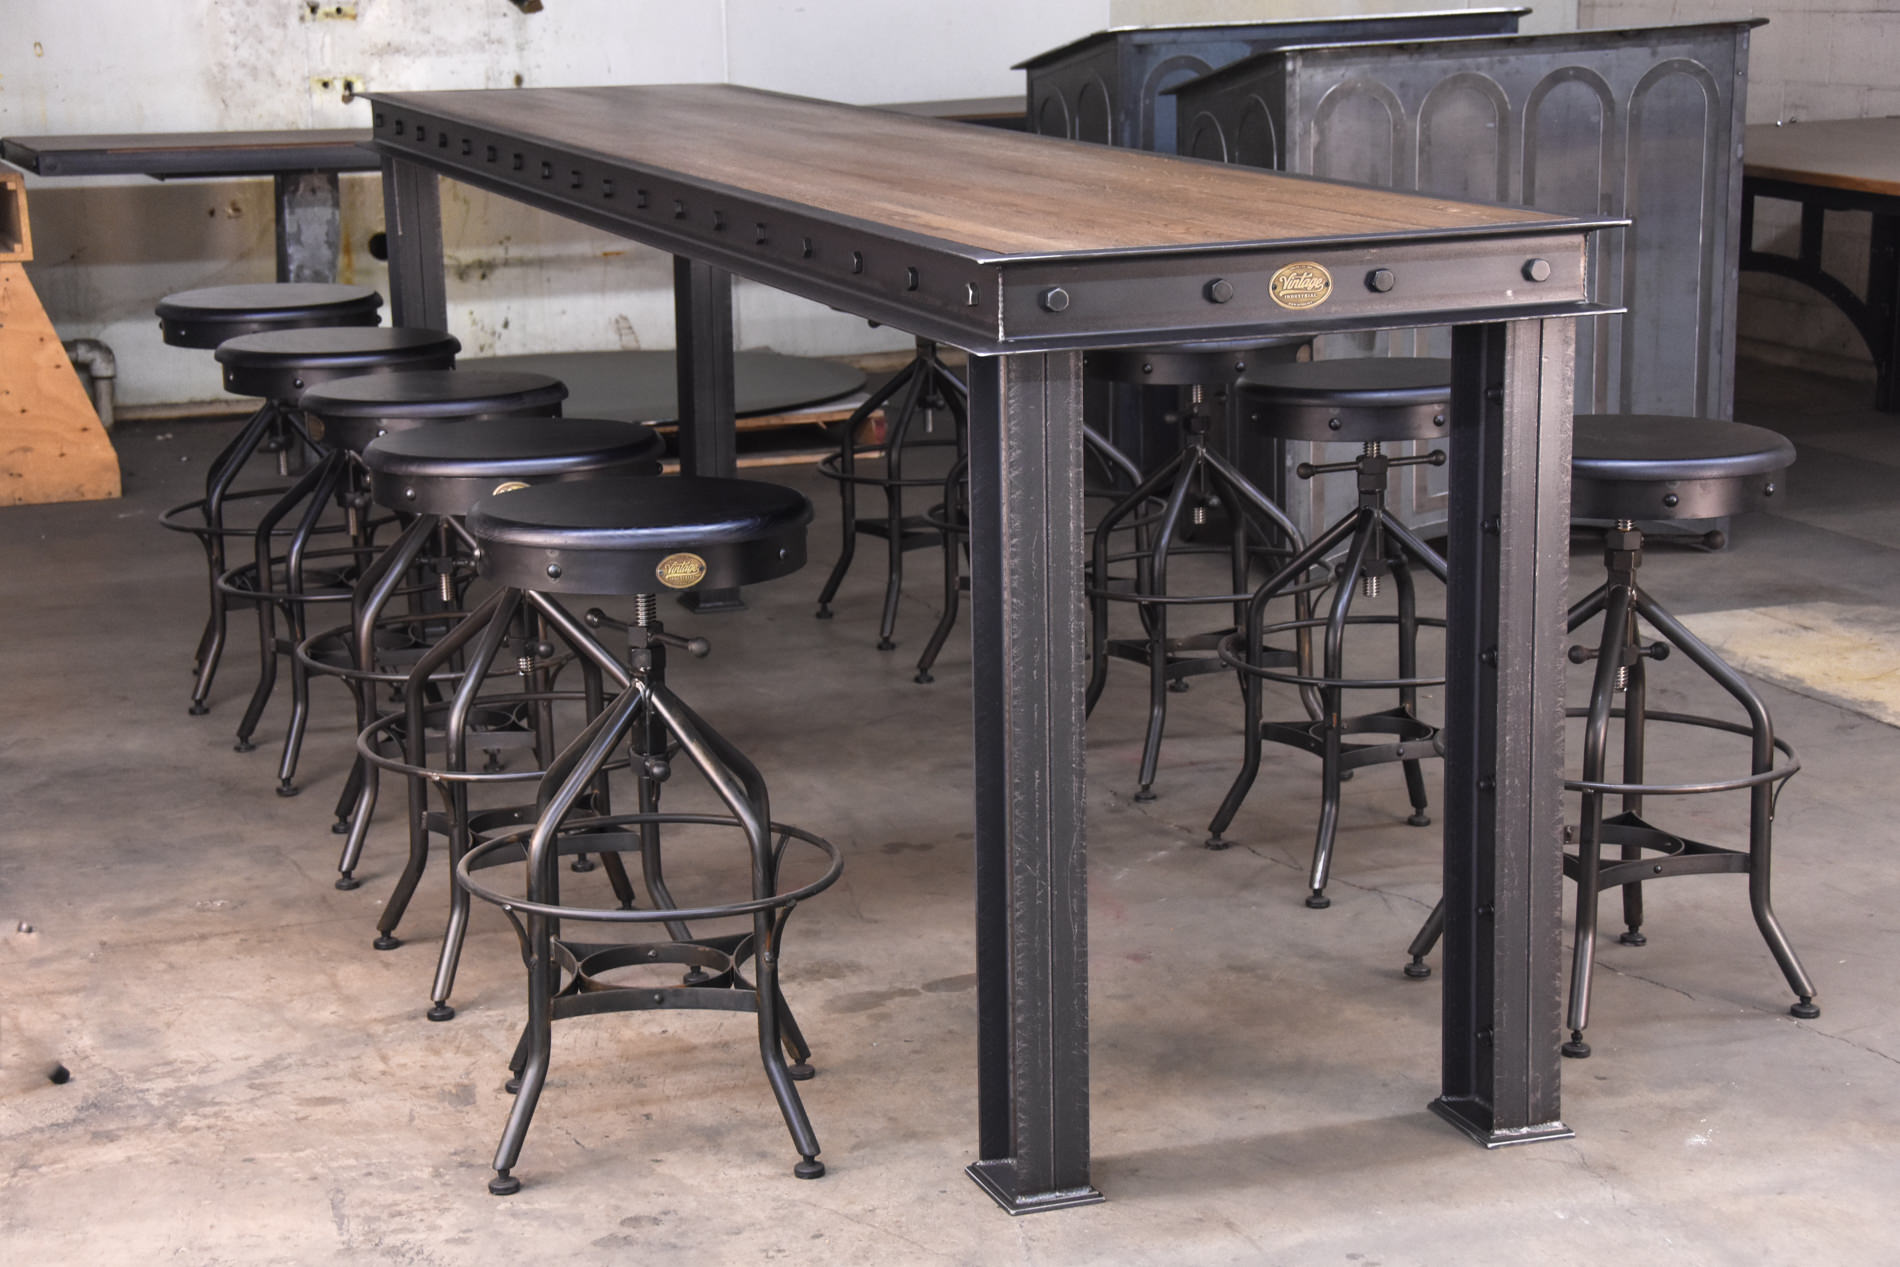 firehouse bar table vintage industrial furniture. Black Bedroom Furniture Sets. Home Design Ideas